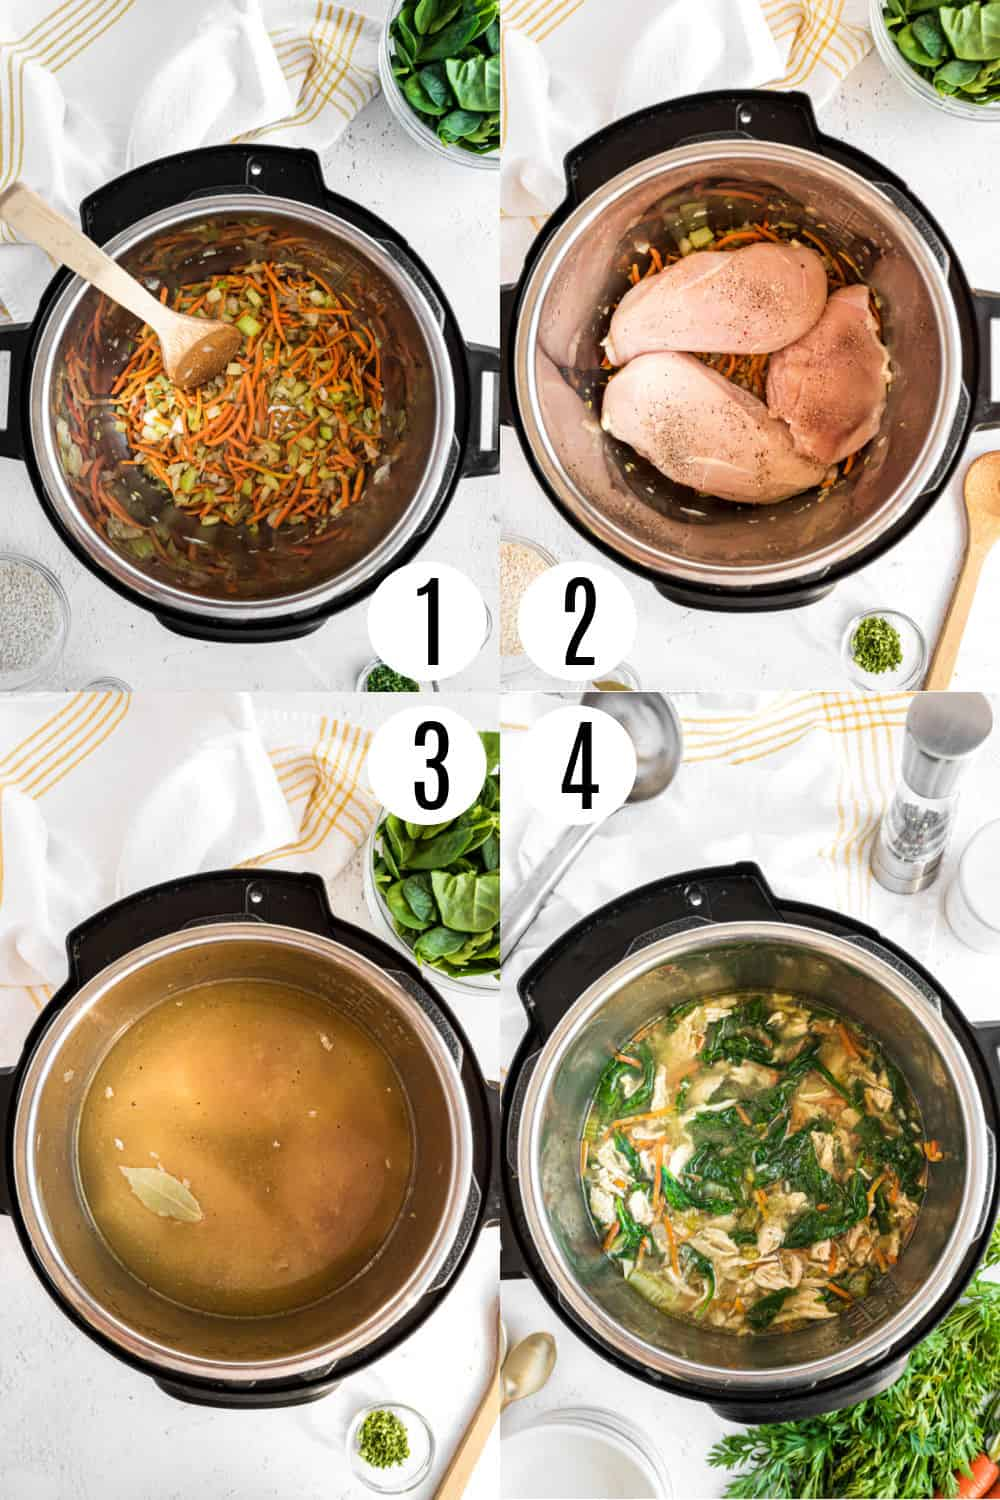 Step by step photos showing how to make instant pot chicken and rice soup.